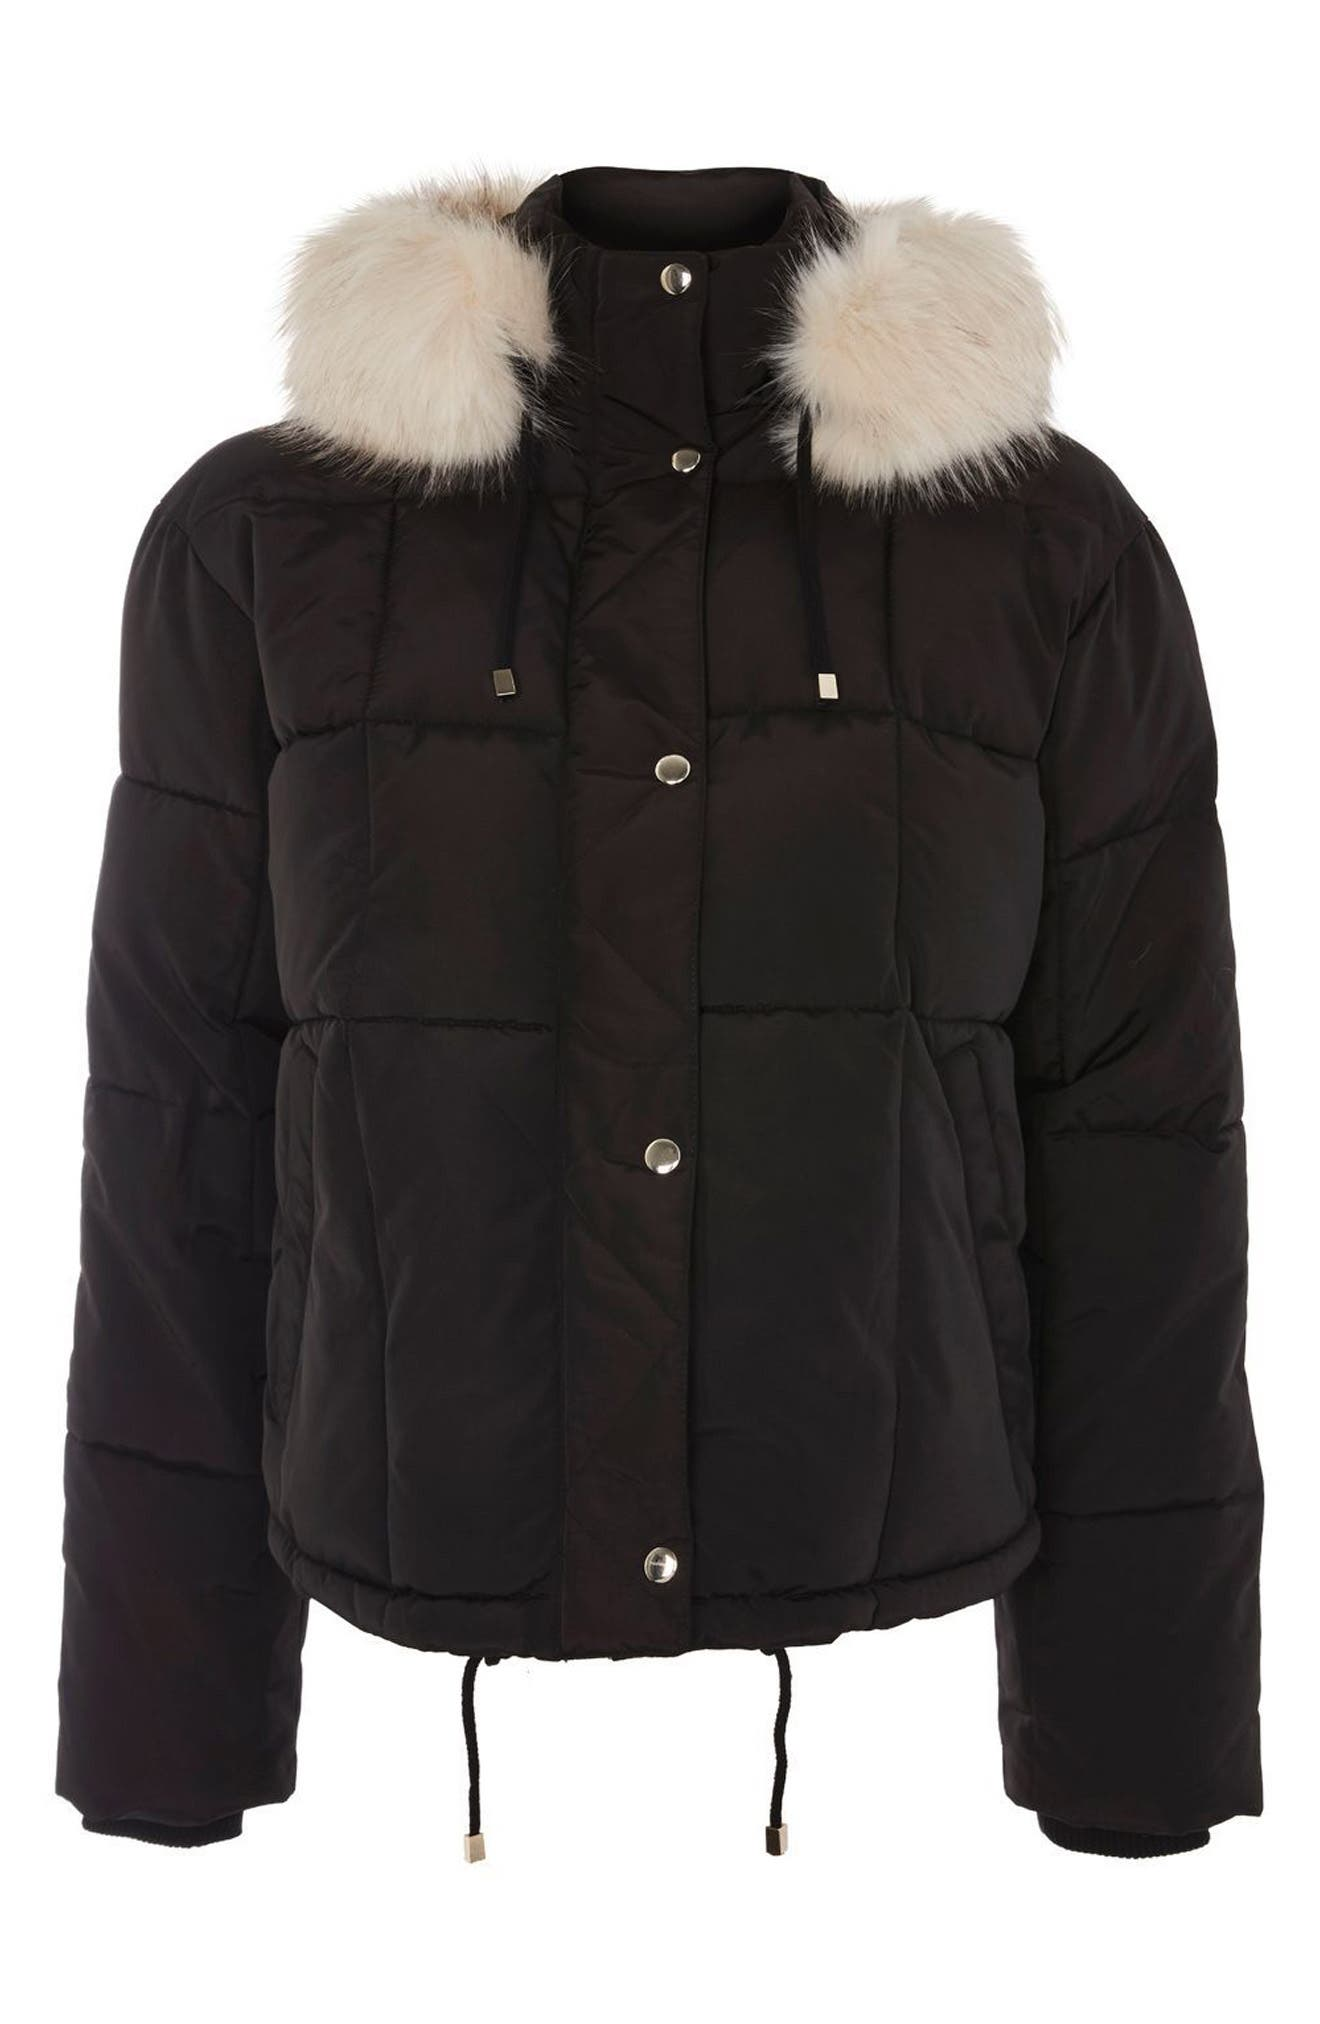 Faux Fur Lined Puffer Jacket,                         Main,                         color, Black Multi